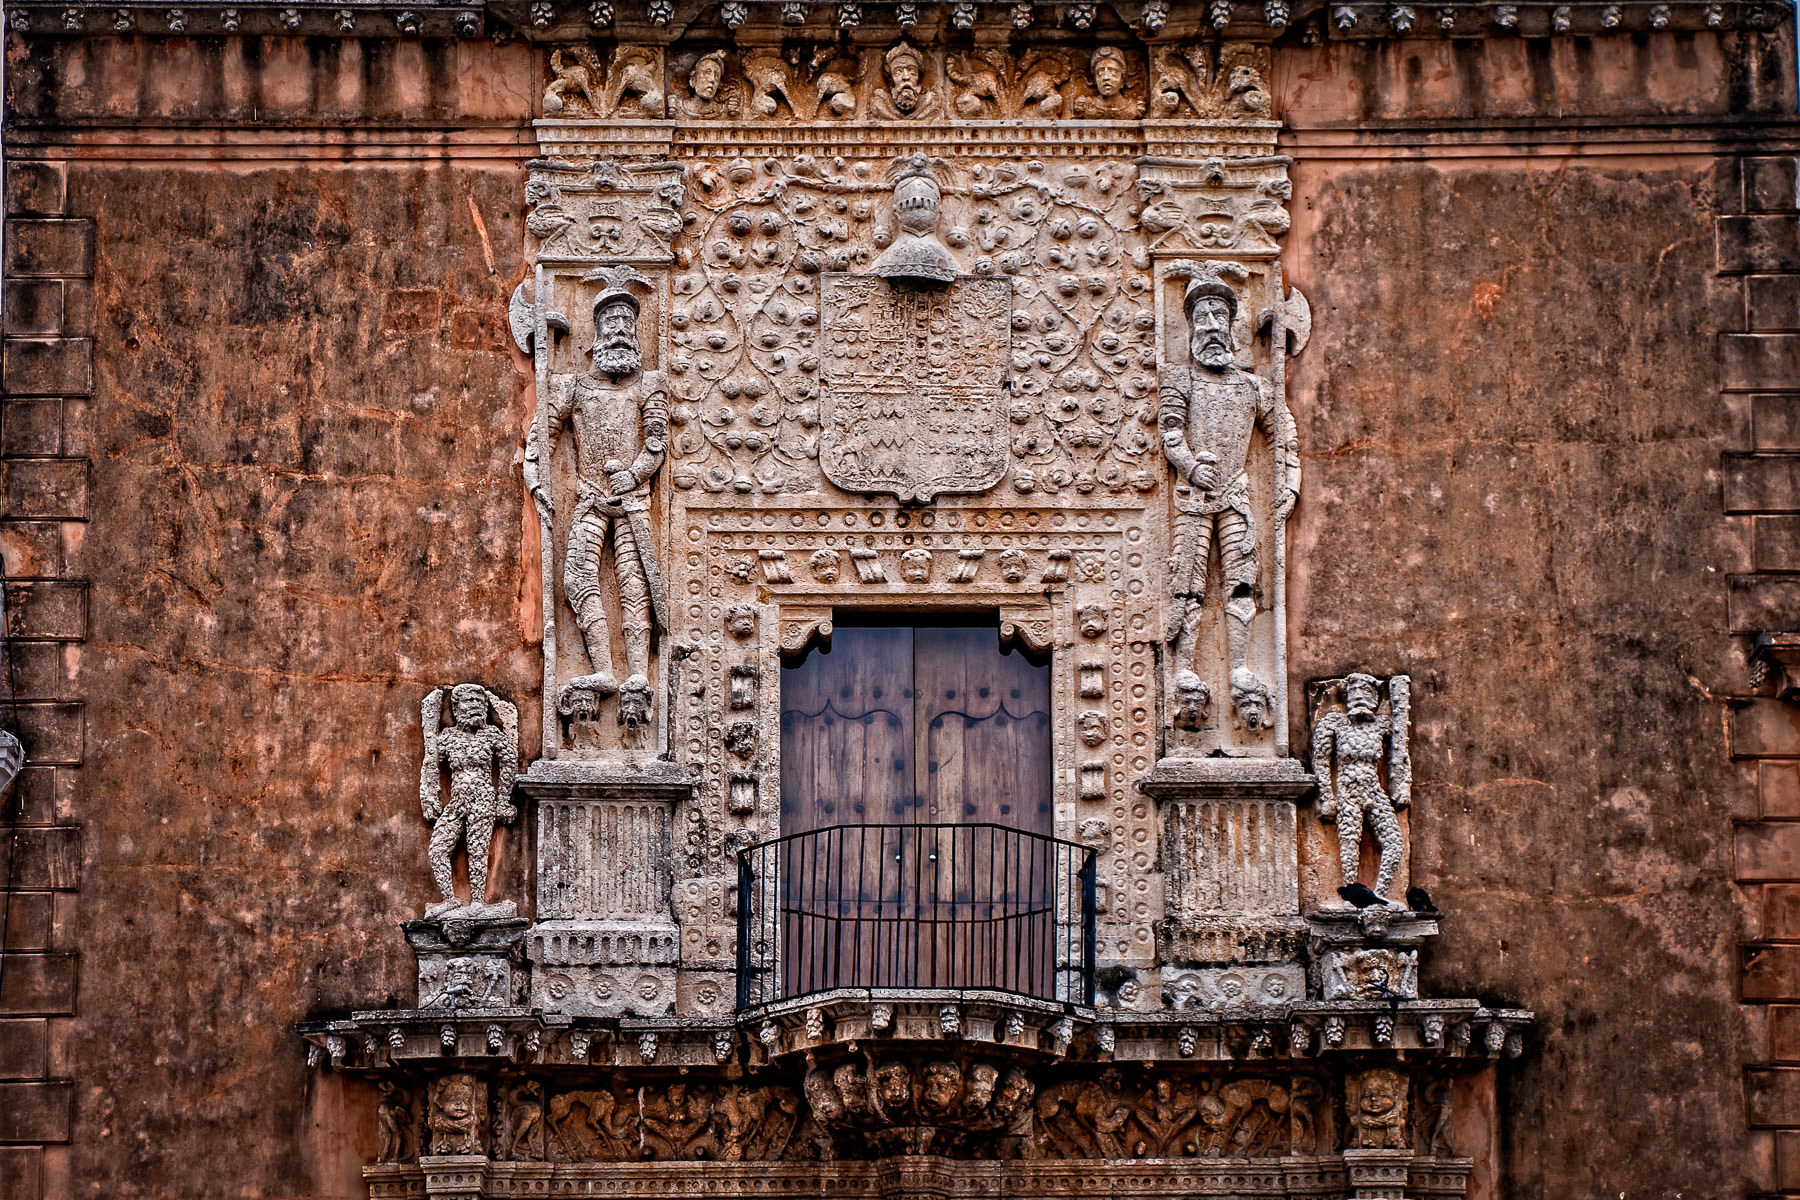 Detail of the facade of the Museo Casa Montejo, Merida, Mexico.